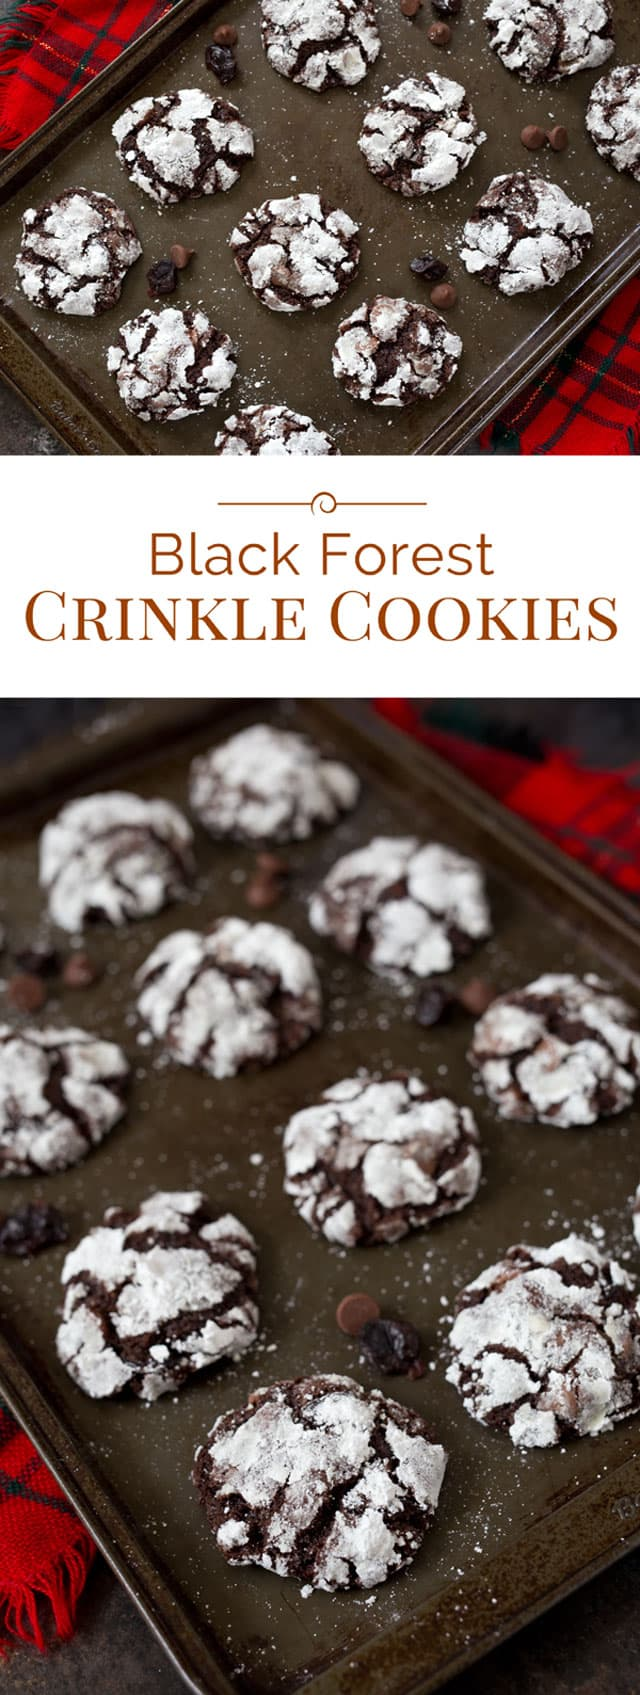 These Black Forest Crinkle Cookies are a soft, rich chocolate cookie ...